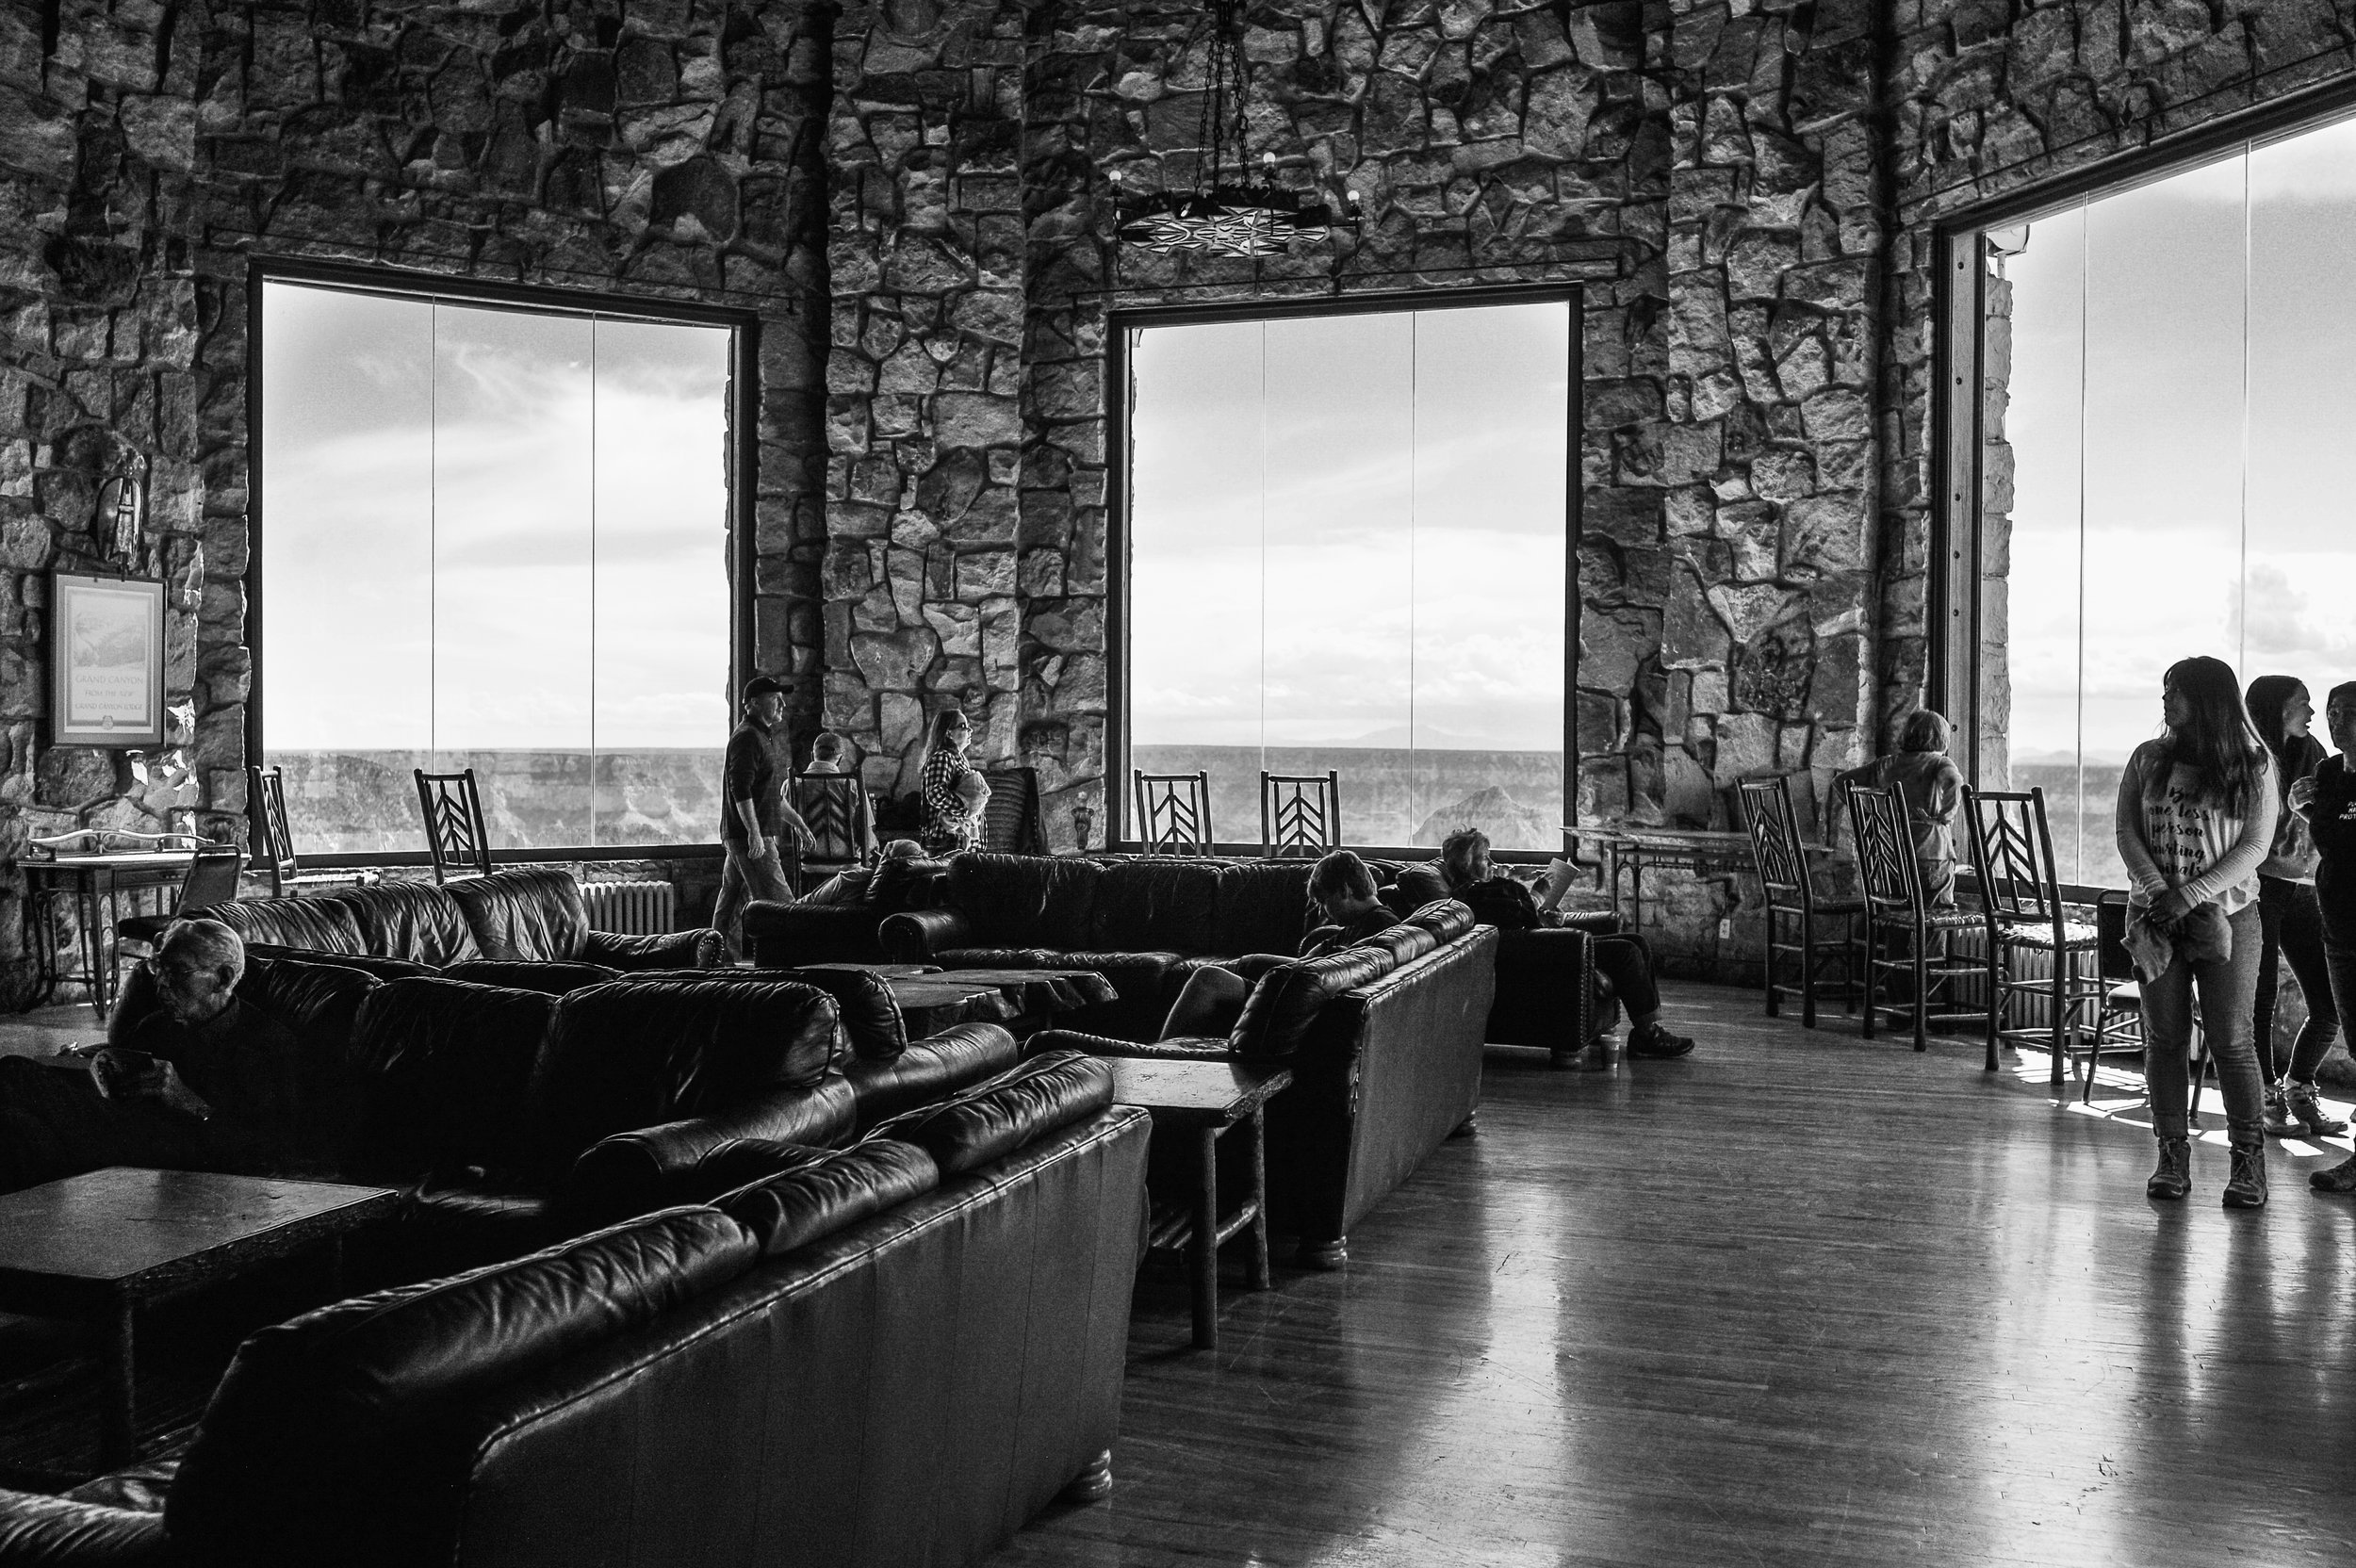 bw north rim lodge inside.jpg